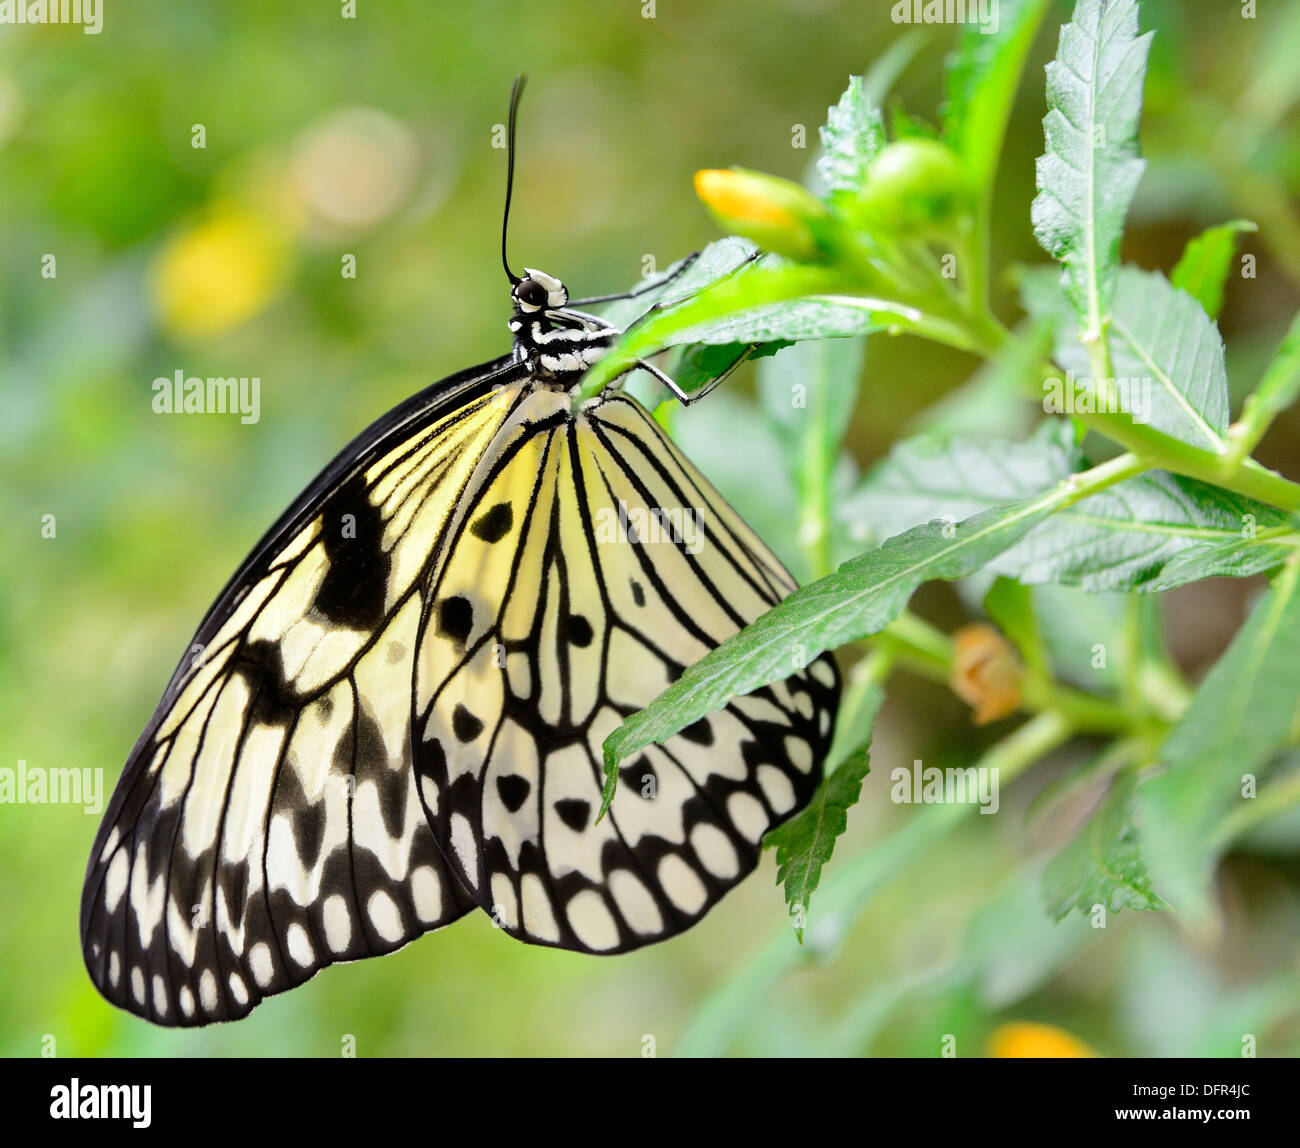 Rice paper butterfly (Idea leuconoe) sitting on the green plant. - Stock Image